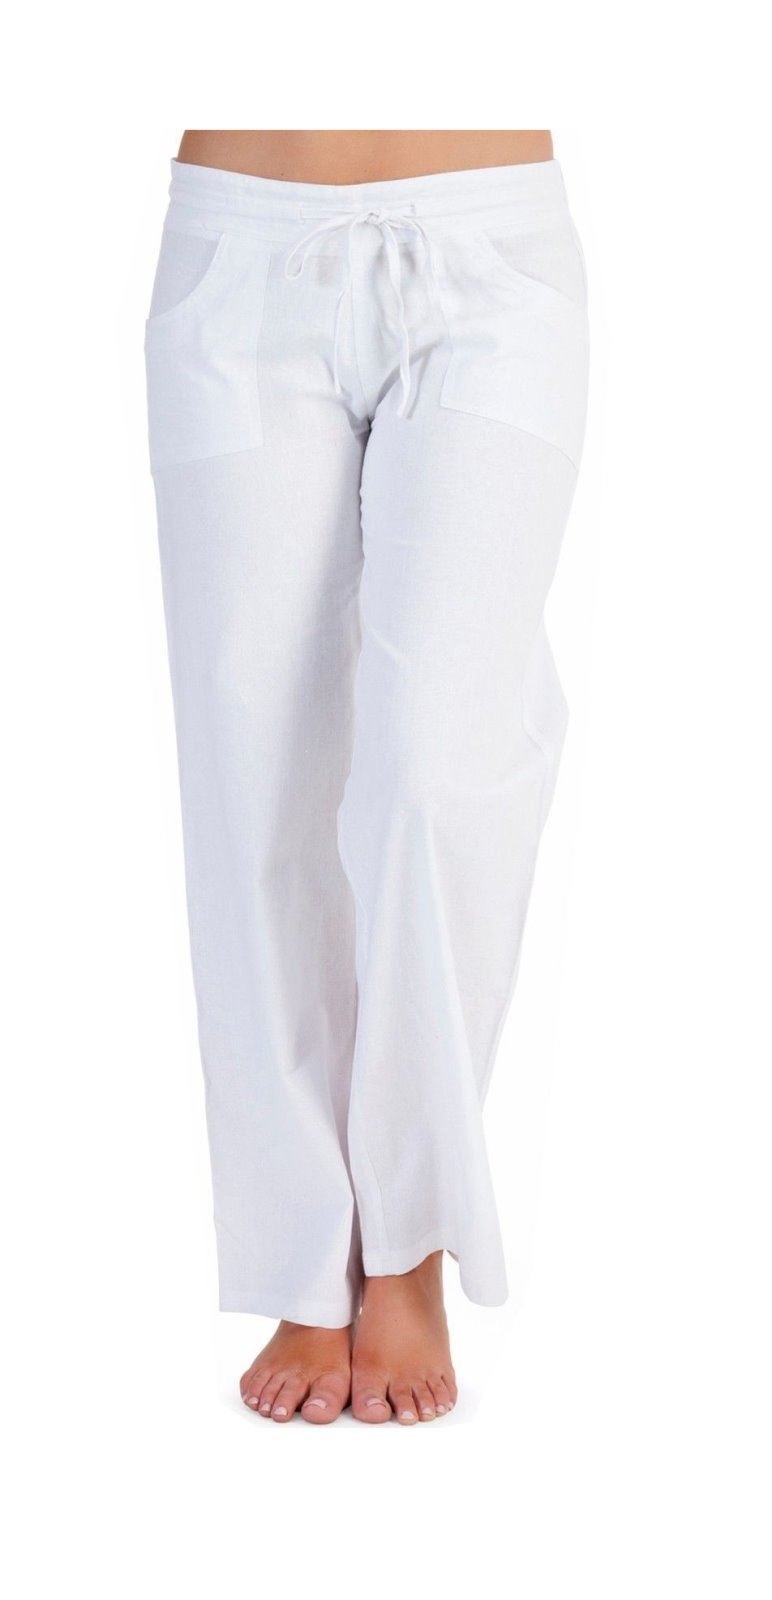 Achieve a refined casual look with these linen pants by Joseph Abboud. They are styled with a flat front and tab closure in a modern fit for a smooth look.